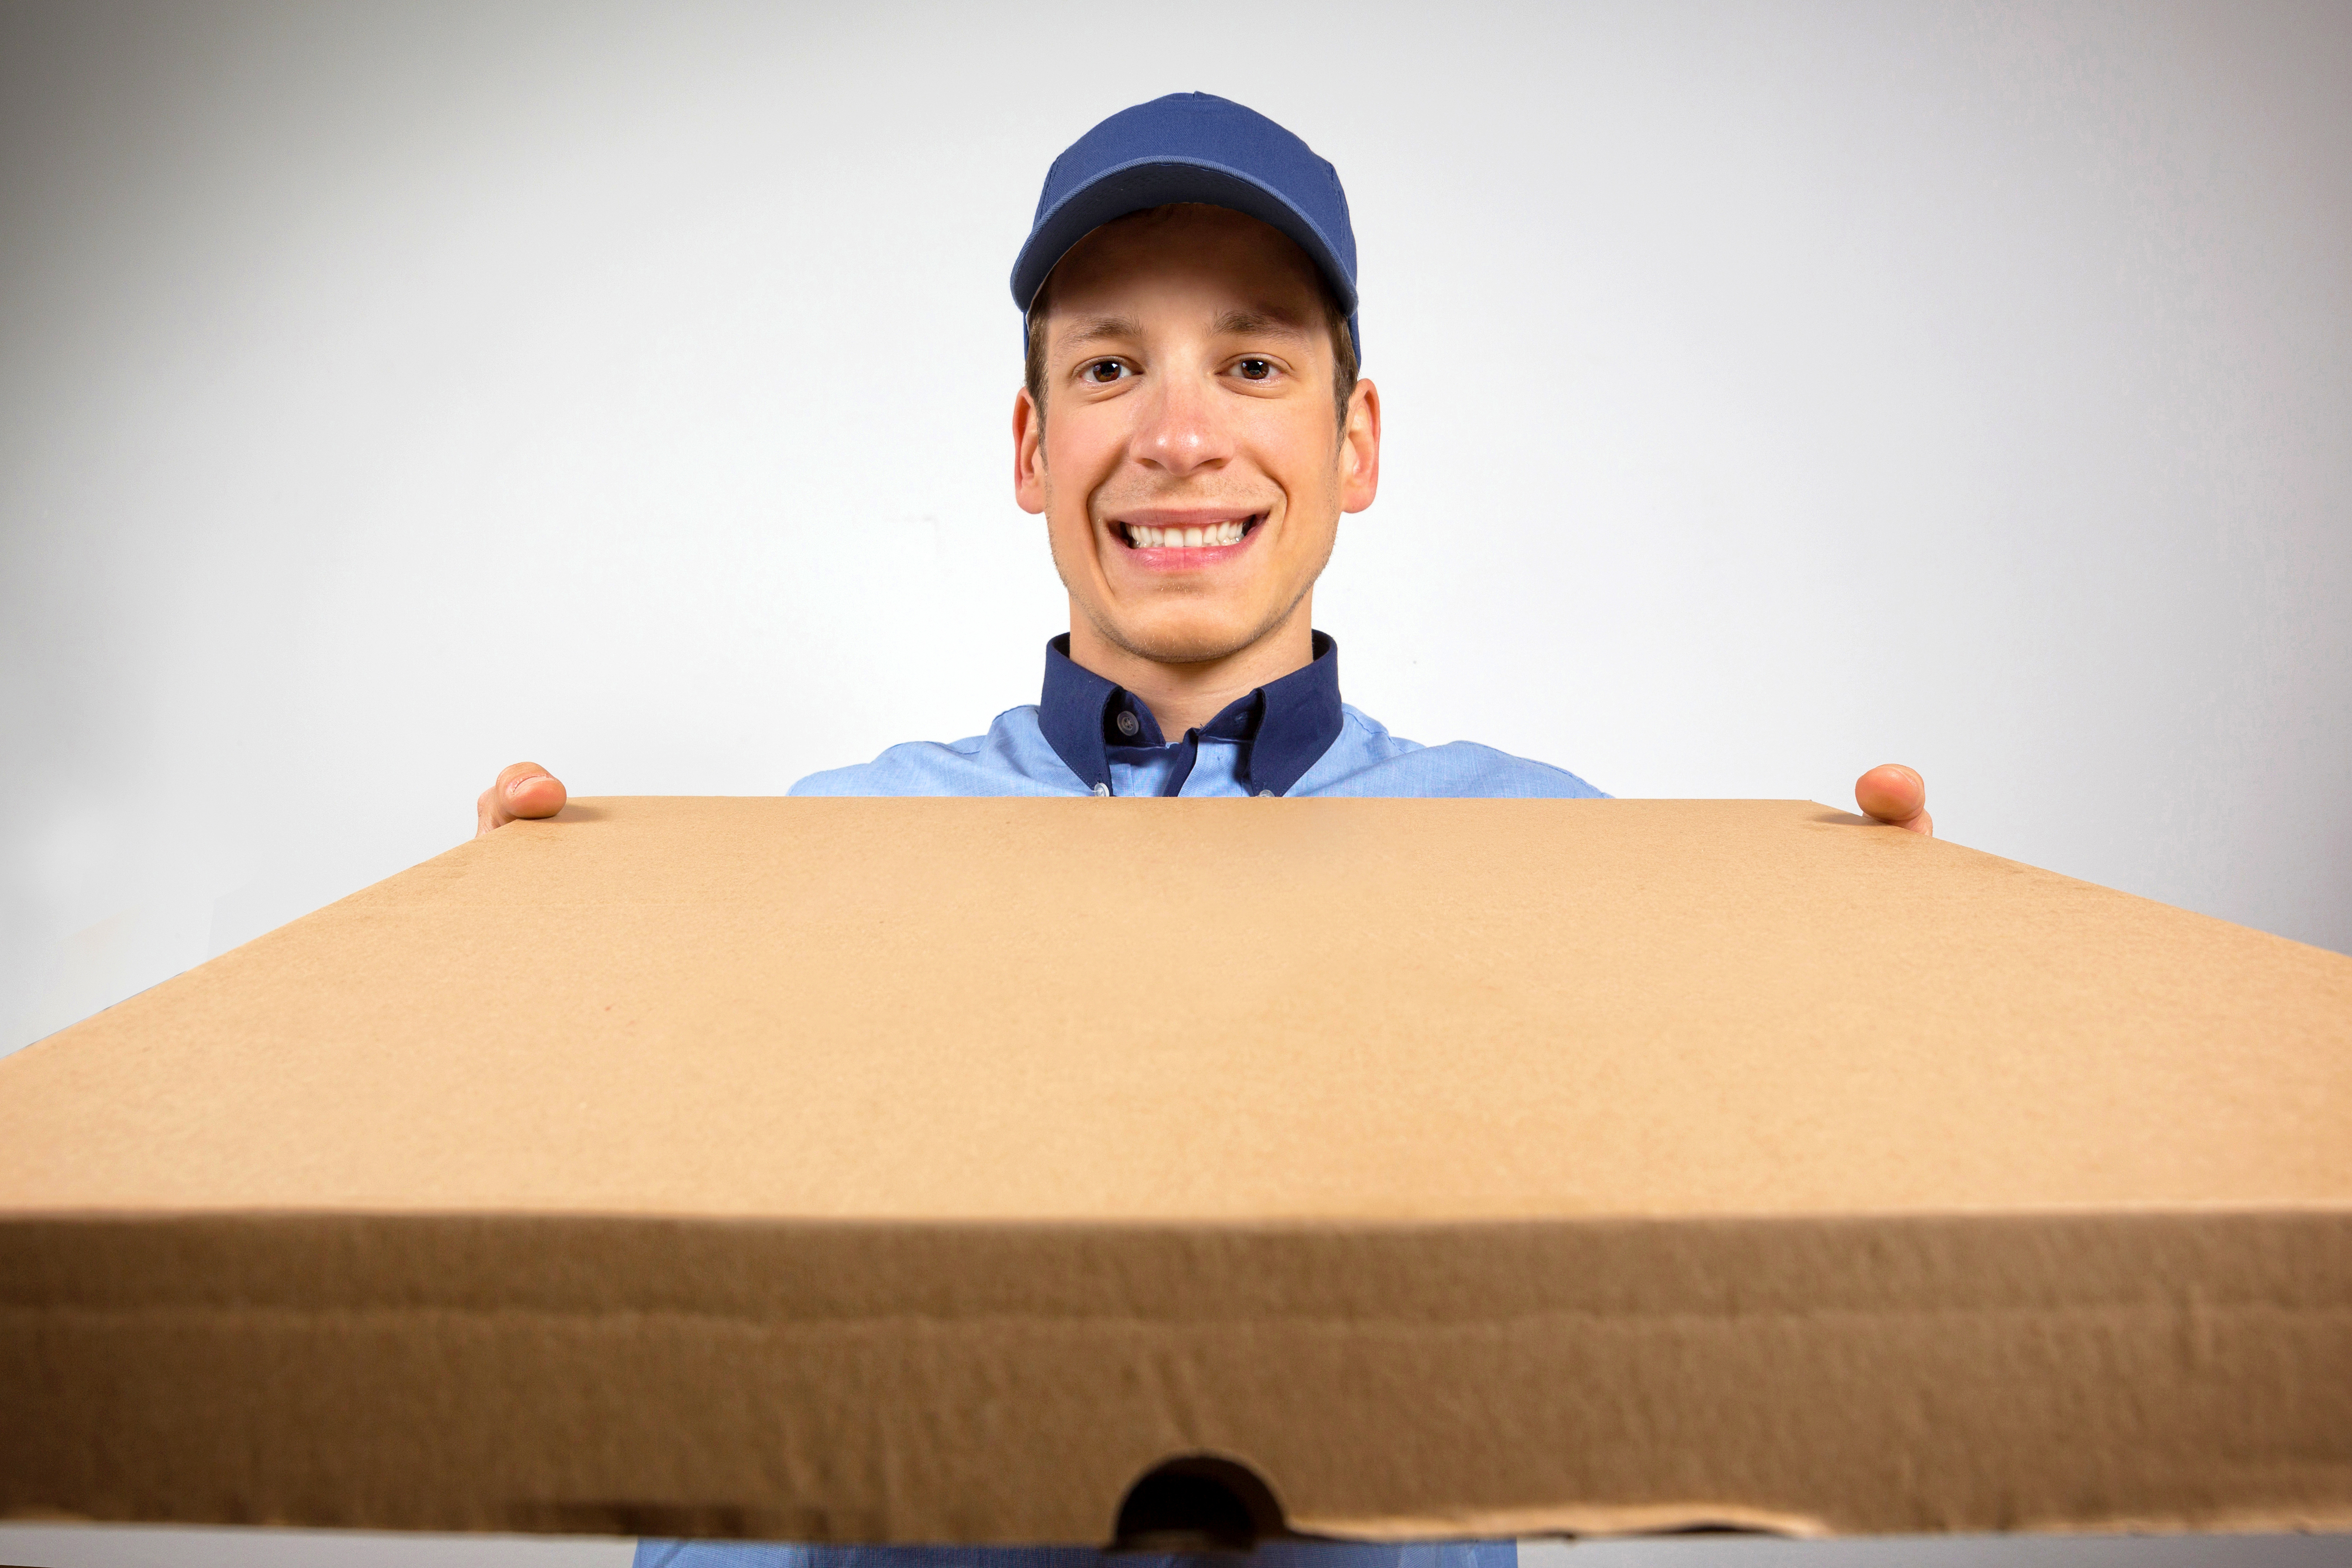 Delivery boy holding out a cardboard pizza box